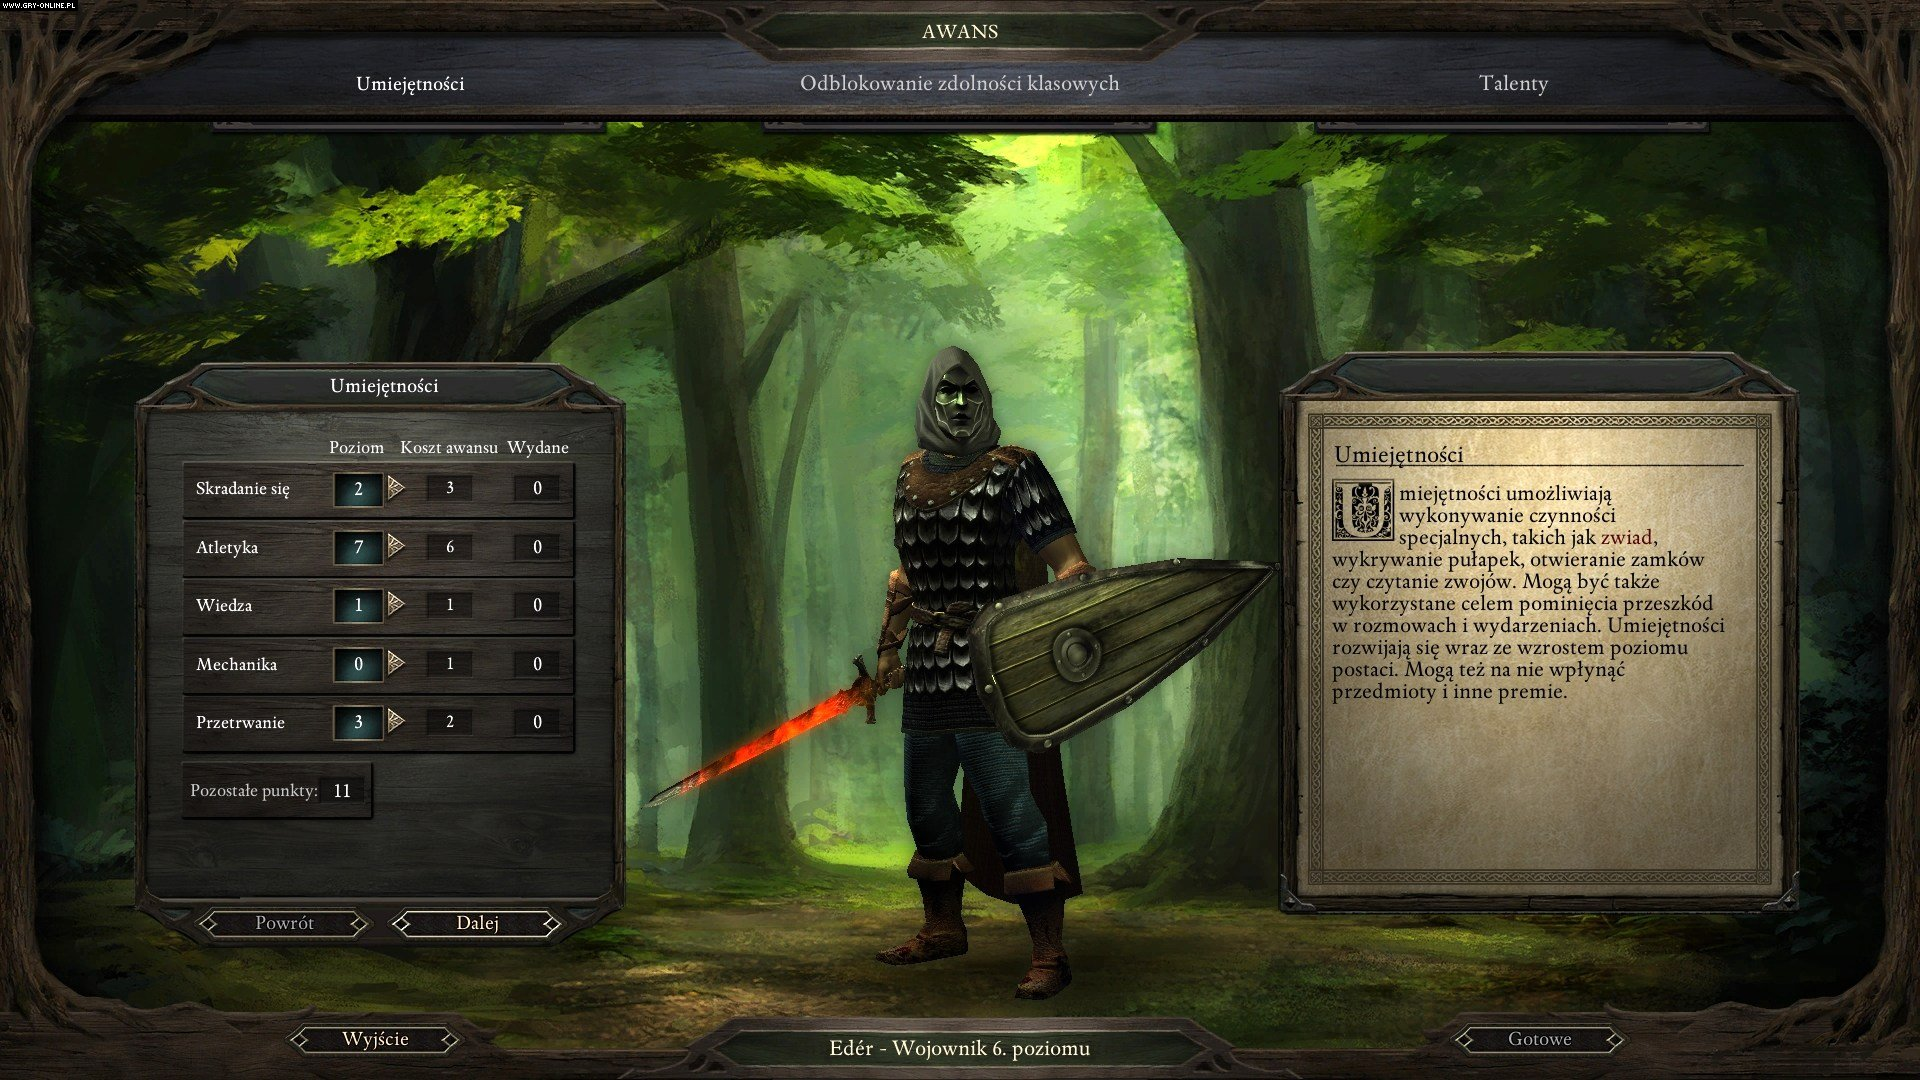 Pillars of Eternity PC Games Image 2/89, Obsidian Entertainment, Paradox Interactive